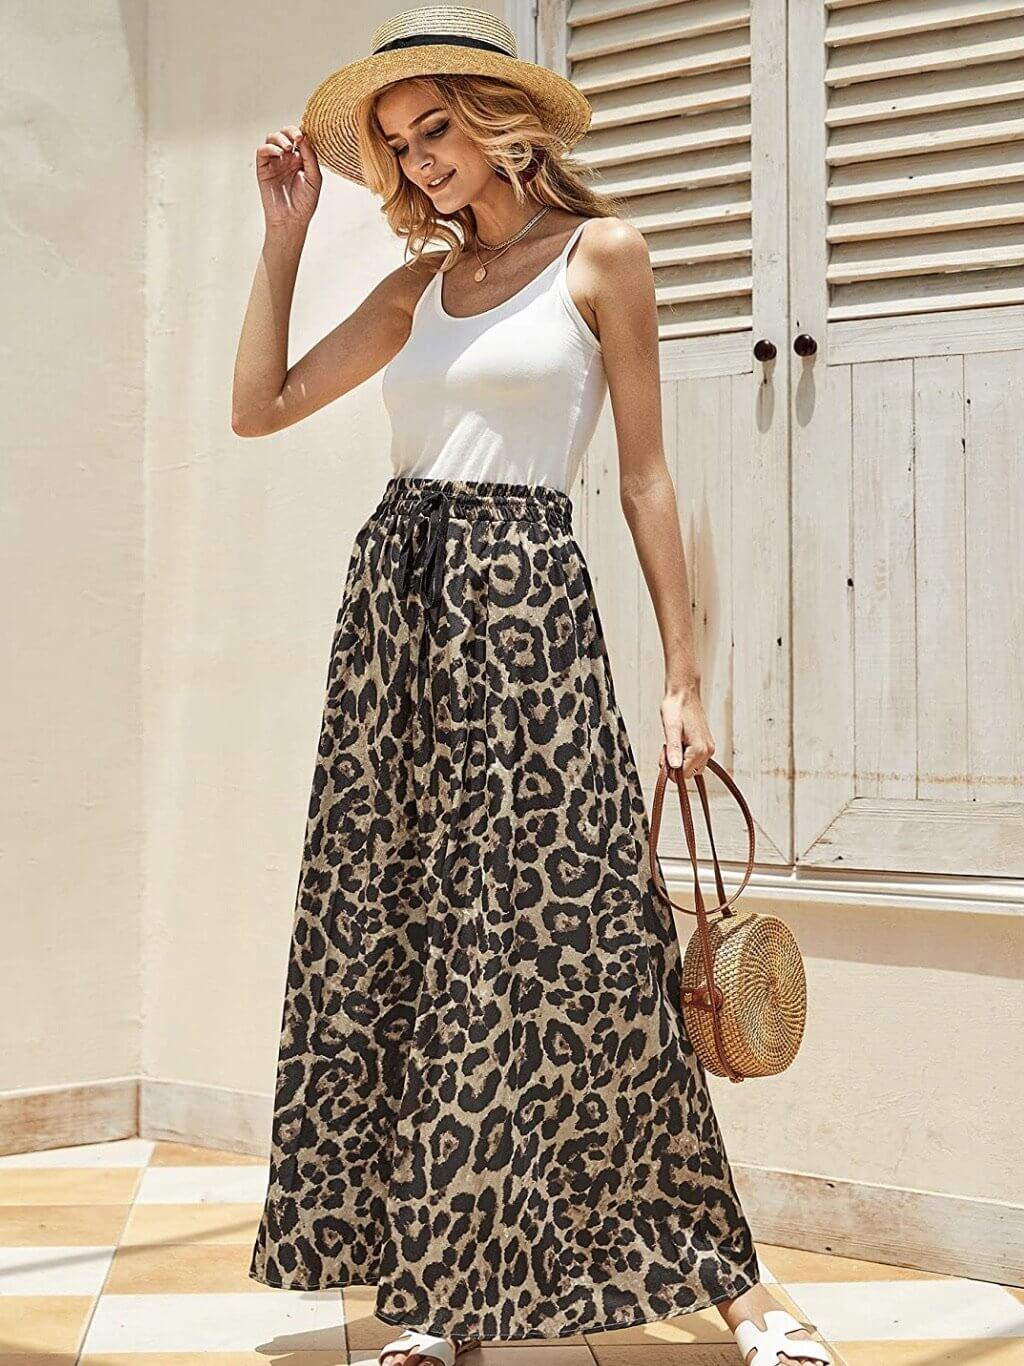 Model wears long skirt made of animal print, with elastic waist and adjustable drawstring. Combined with white top, hat and wallet.